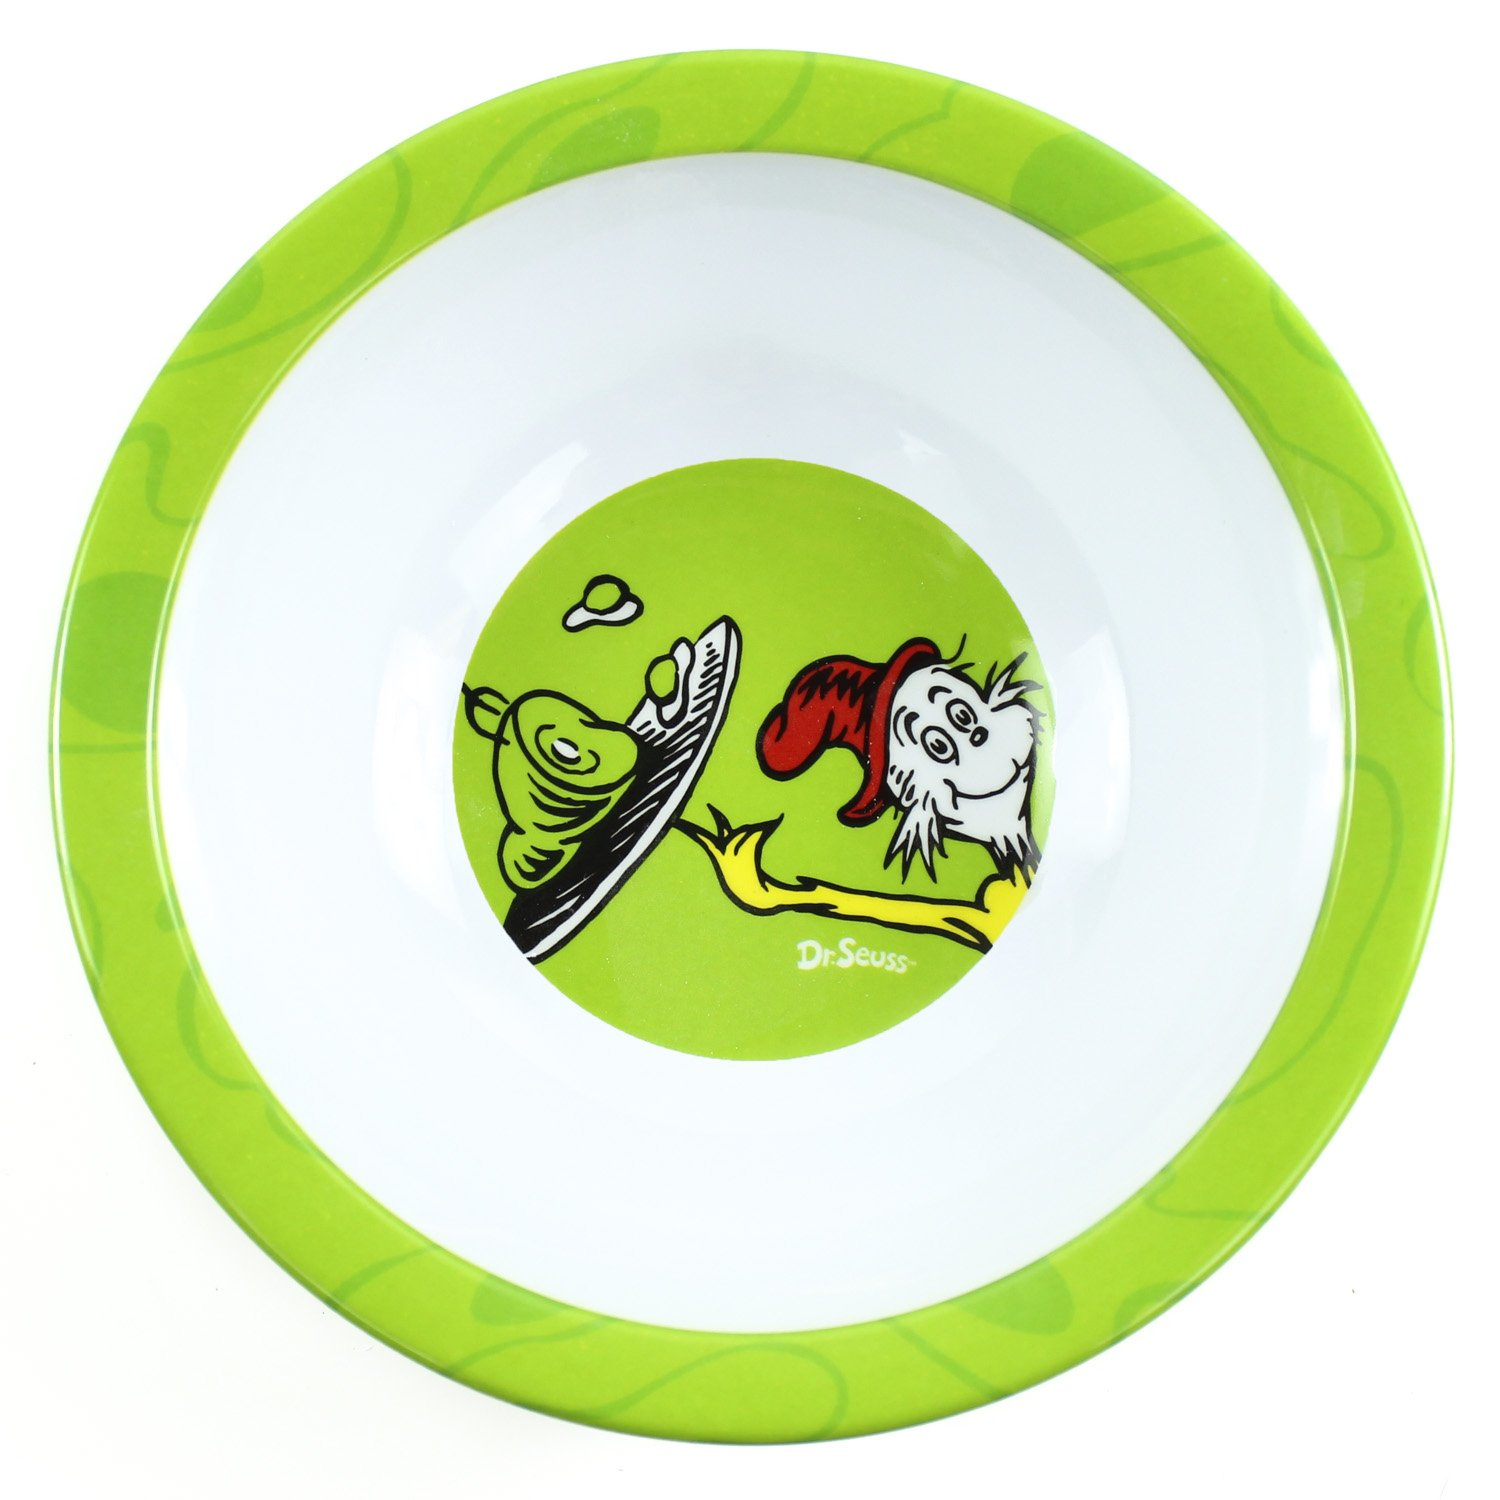 Bumkins Dr. Seuss Melamine Bowl, Yellow One Fish MB